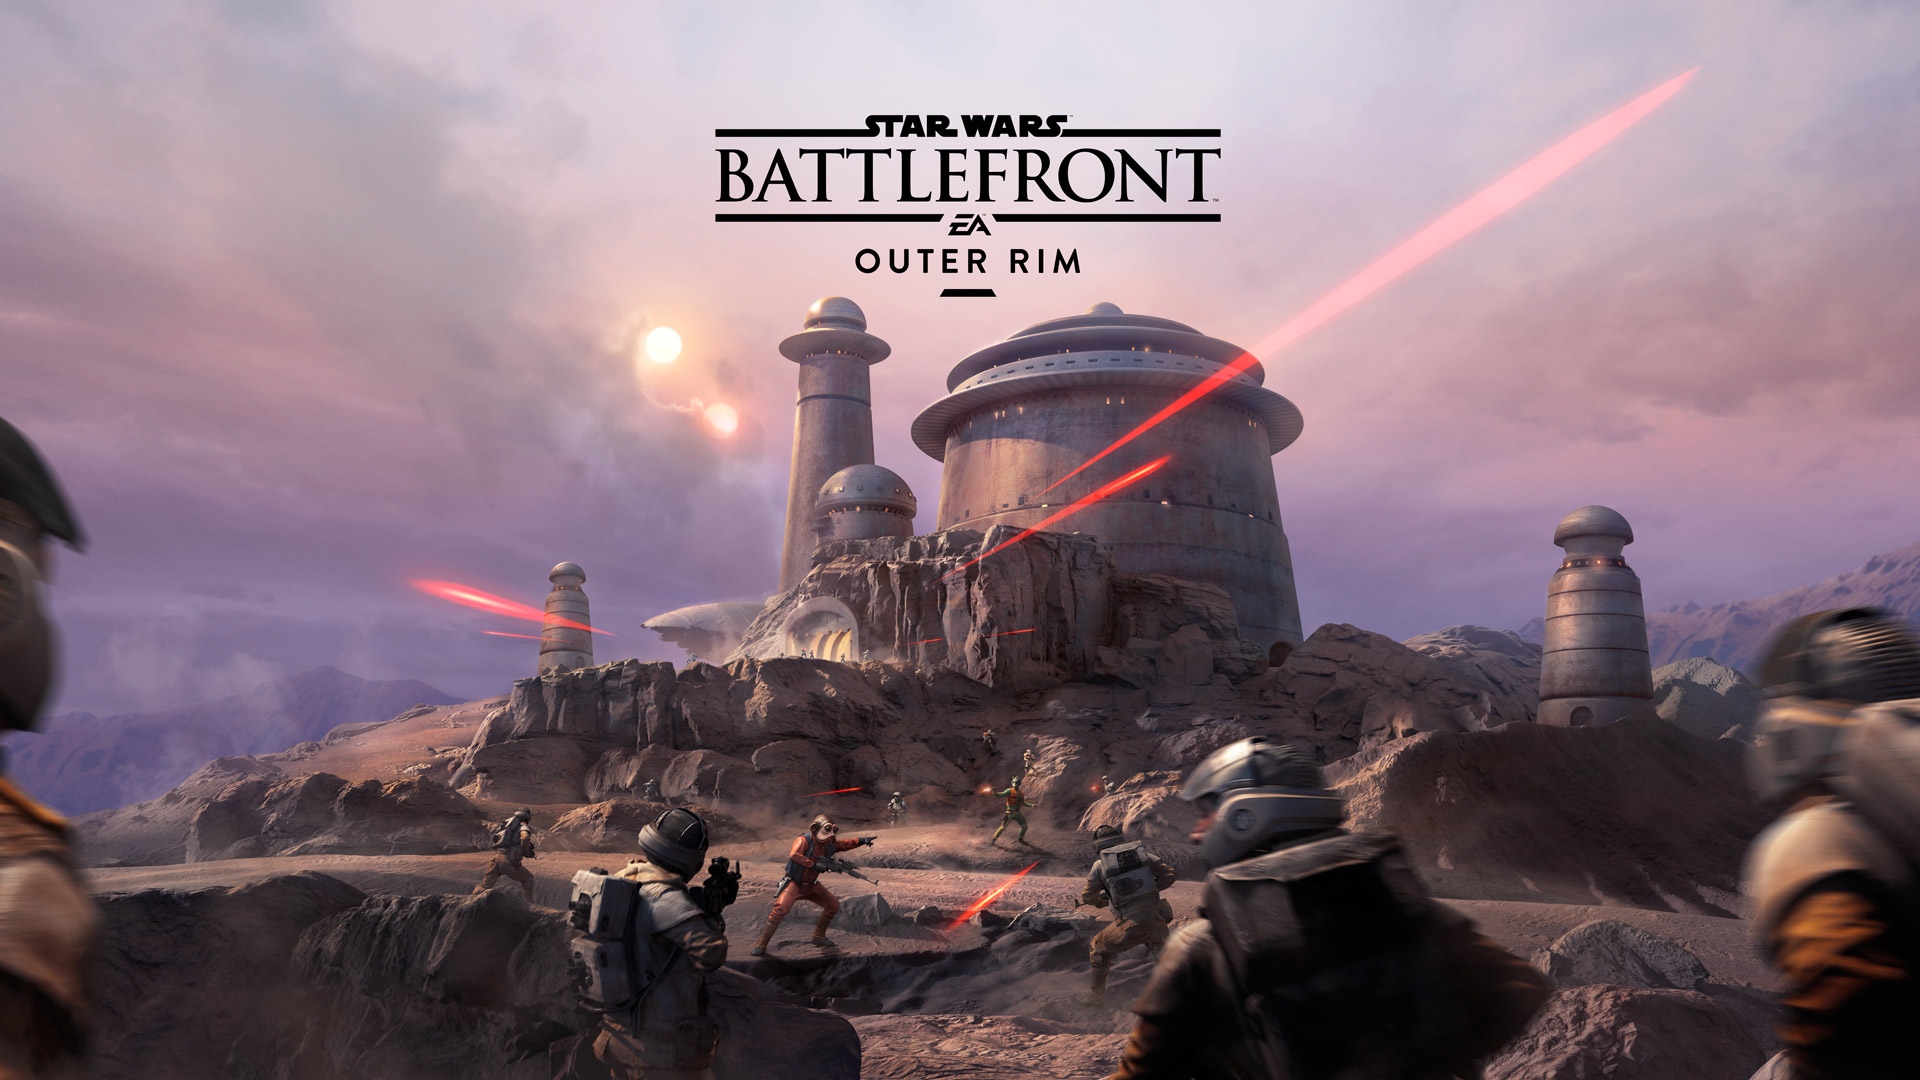 Star Wars Battlefront's Outer Rim expansion launches April 5, costs $14.99, says GameStop